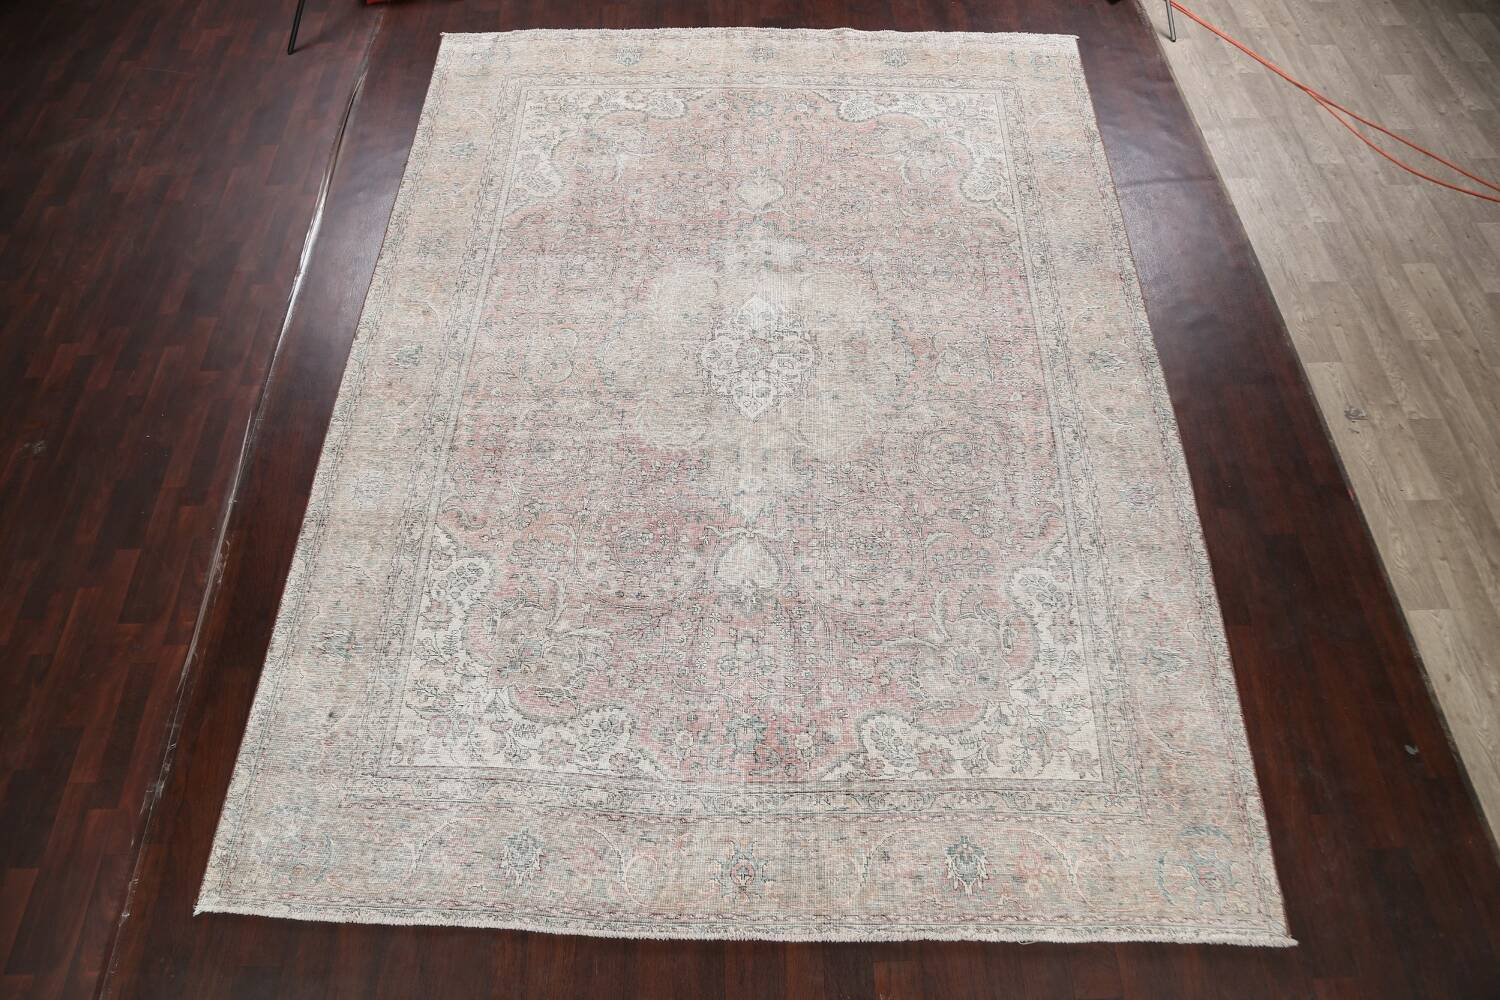 Antique Muted Distressed Tabriz Persian Area Rug 10x13 image 2